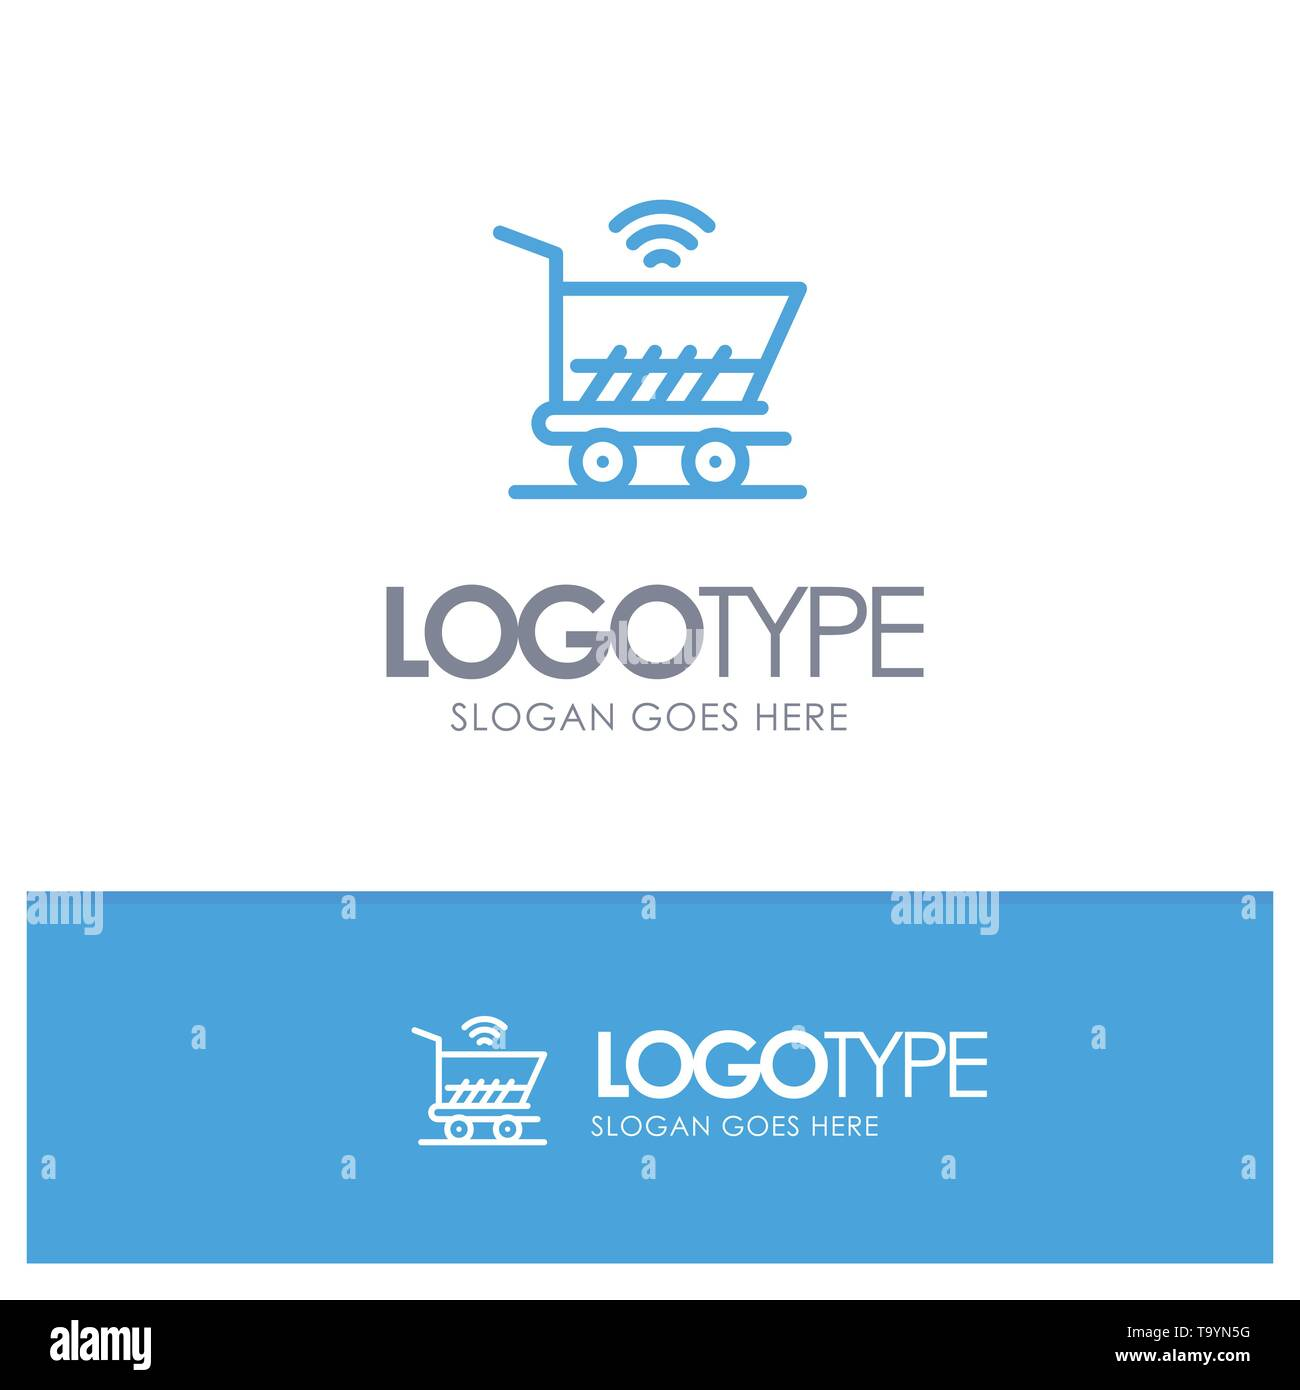 Trolley, Cart, Wifi, Shopping Blue outLine Logo with place for tagline - Stock Image